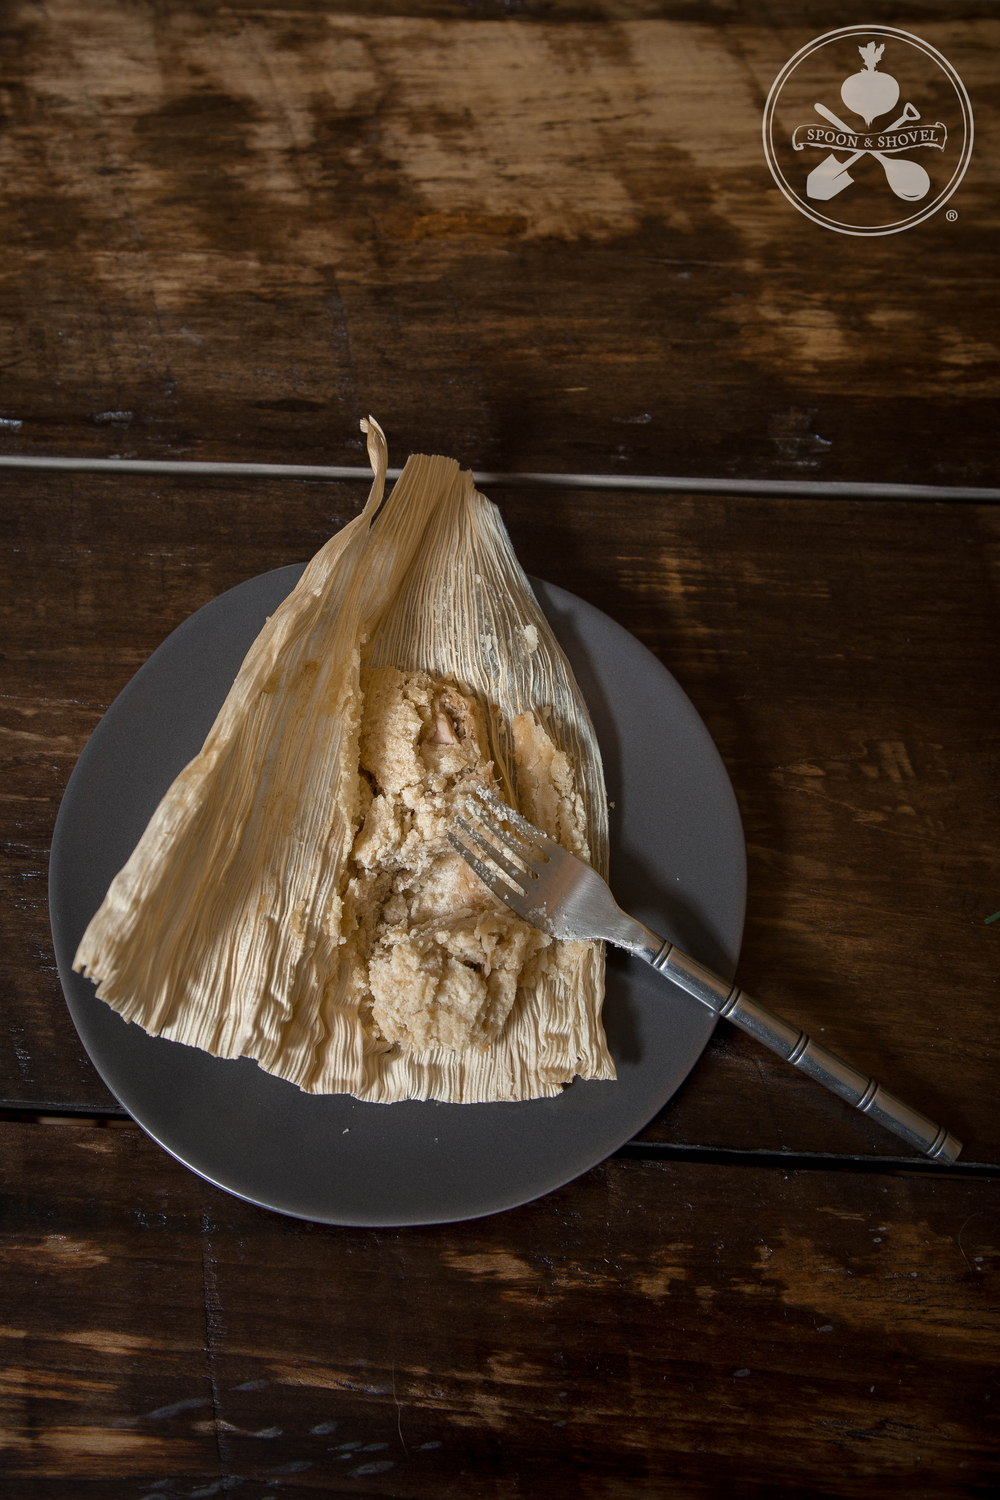 Vegan, GF jackfruit tamales from The Spoon + Shovel